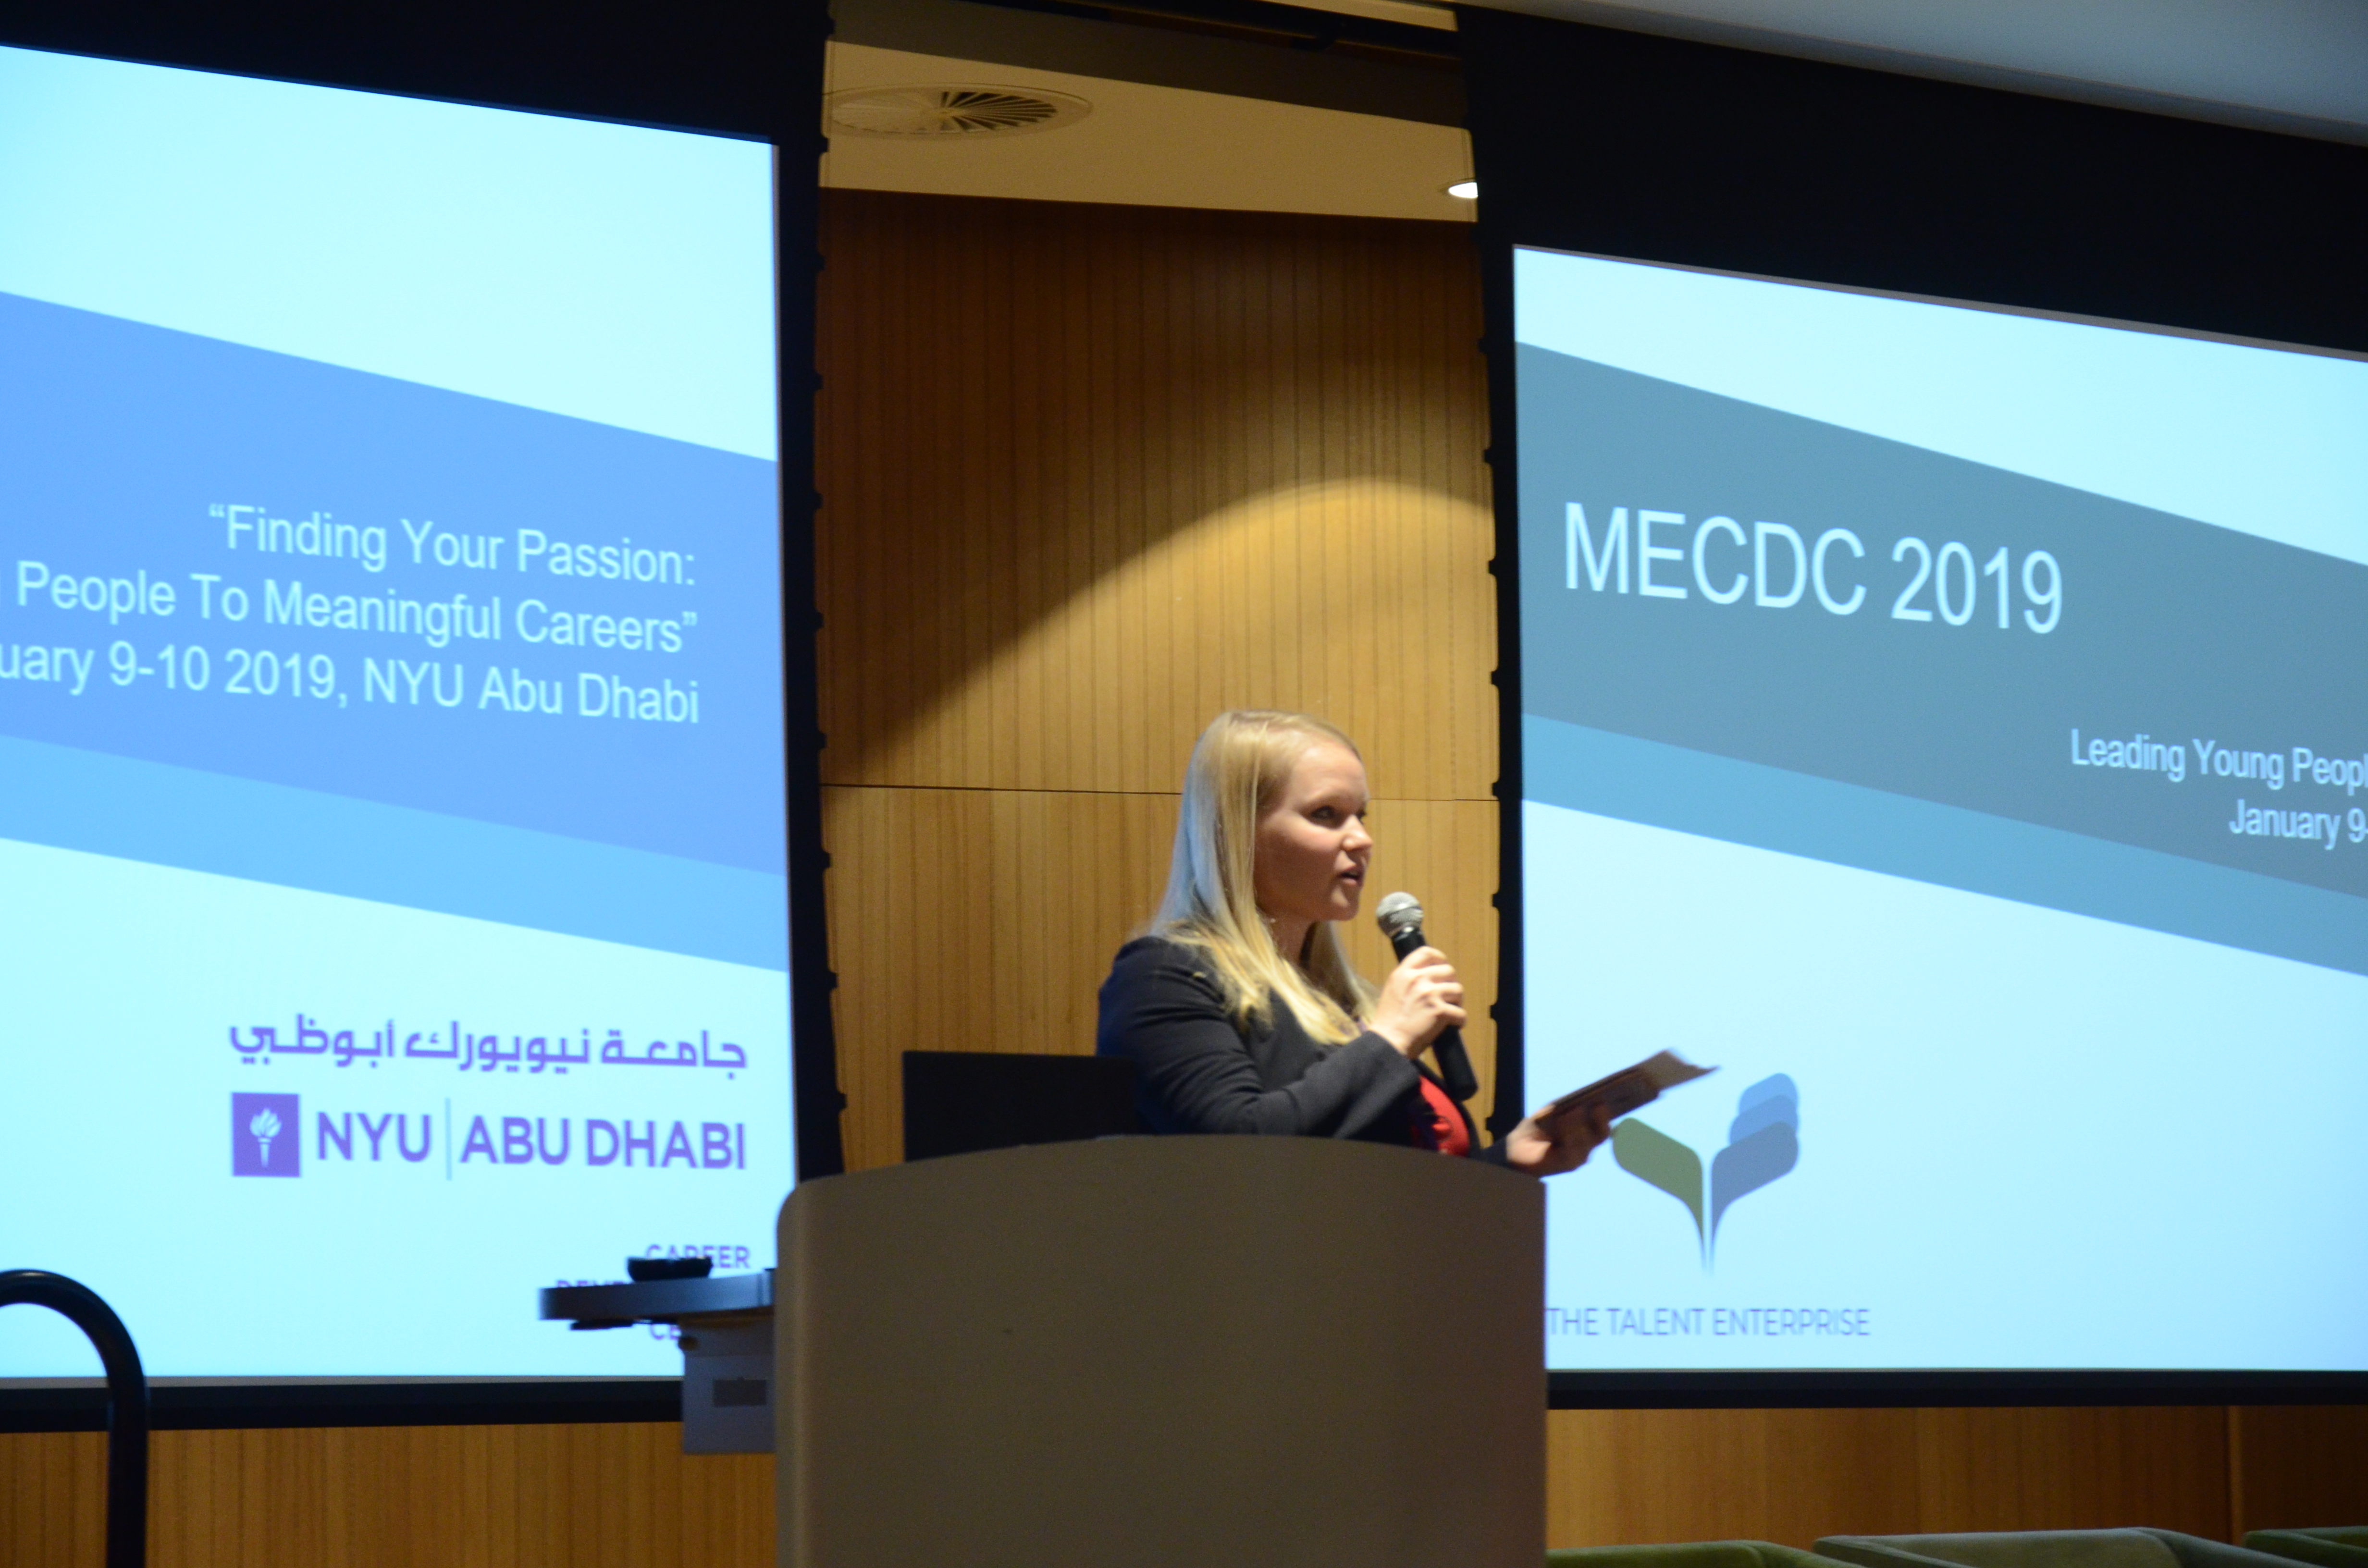 MECDC | Talent Development, UAE - The Talent Enterprise